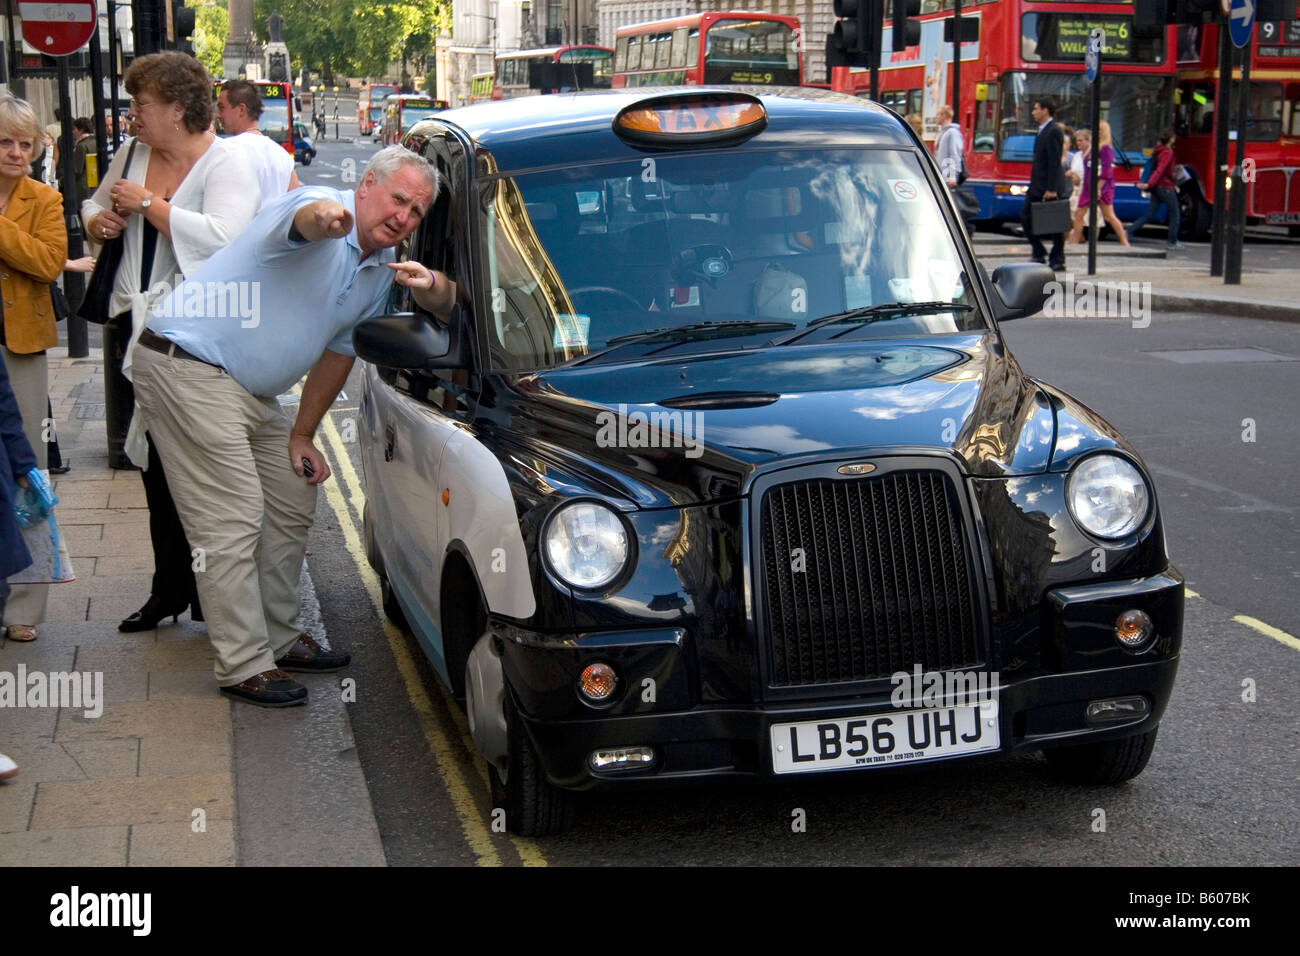 Hackney taxi cab driver giving directions to a pedestian in the city of London England - Stock Image